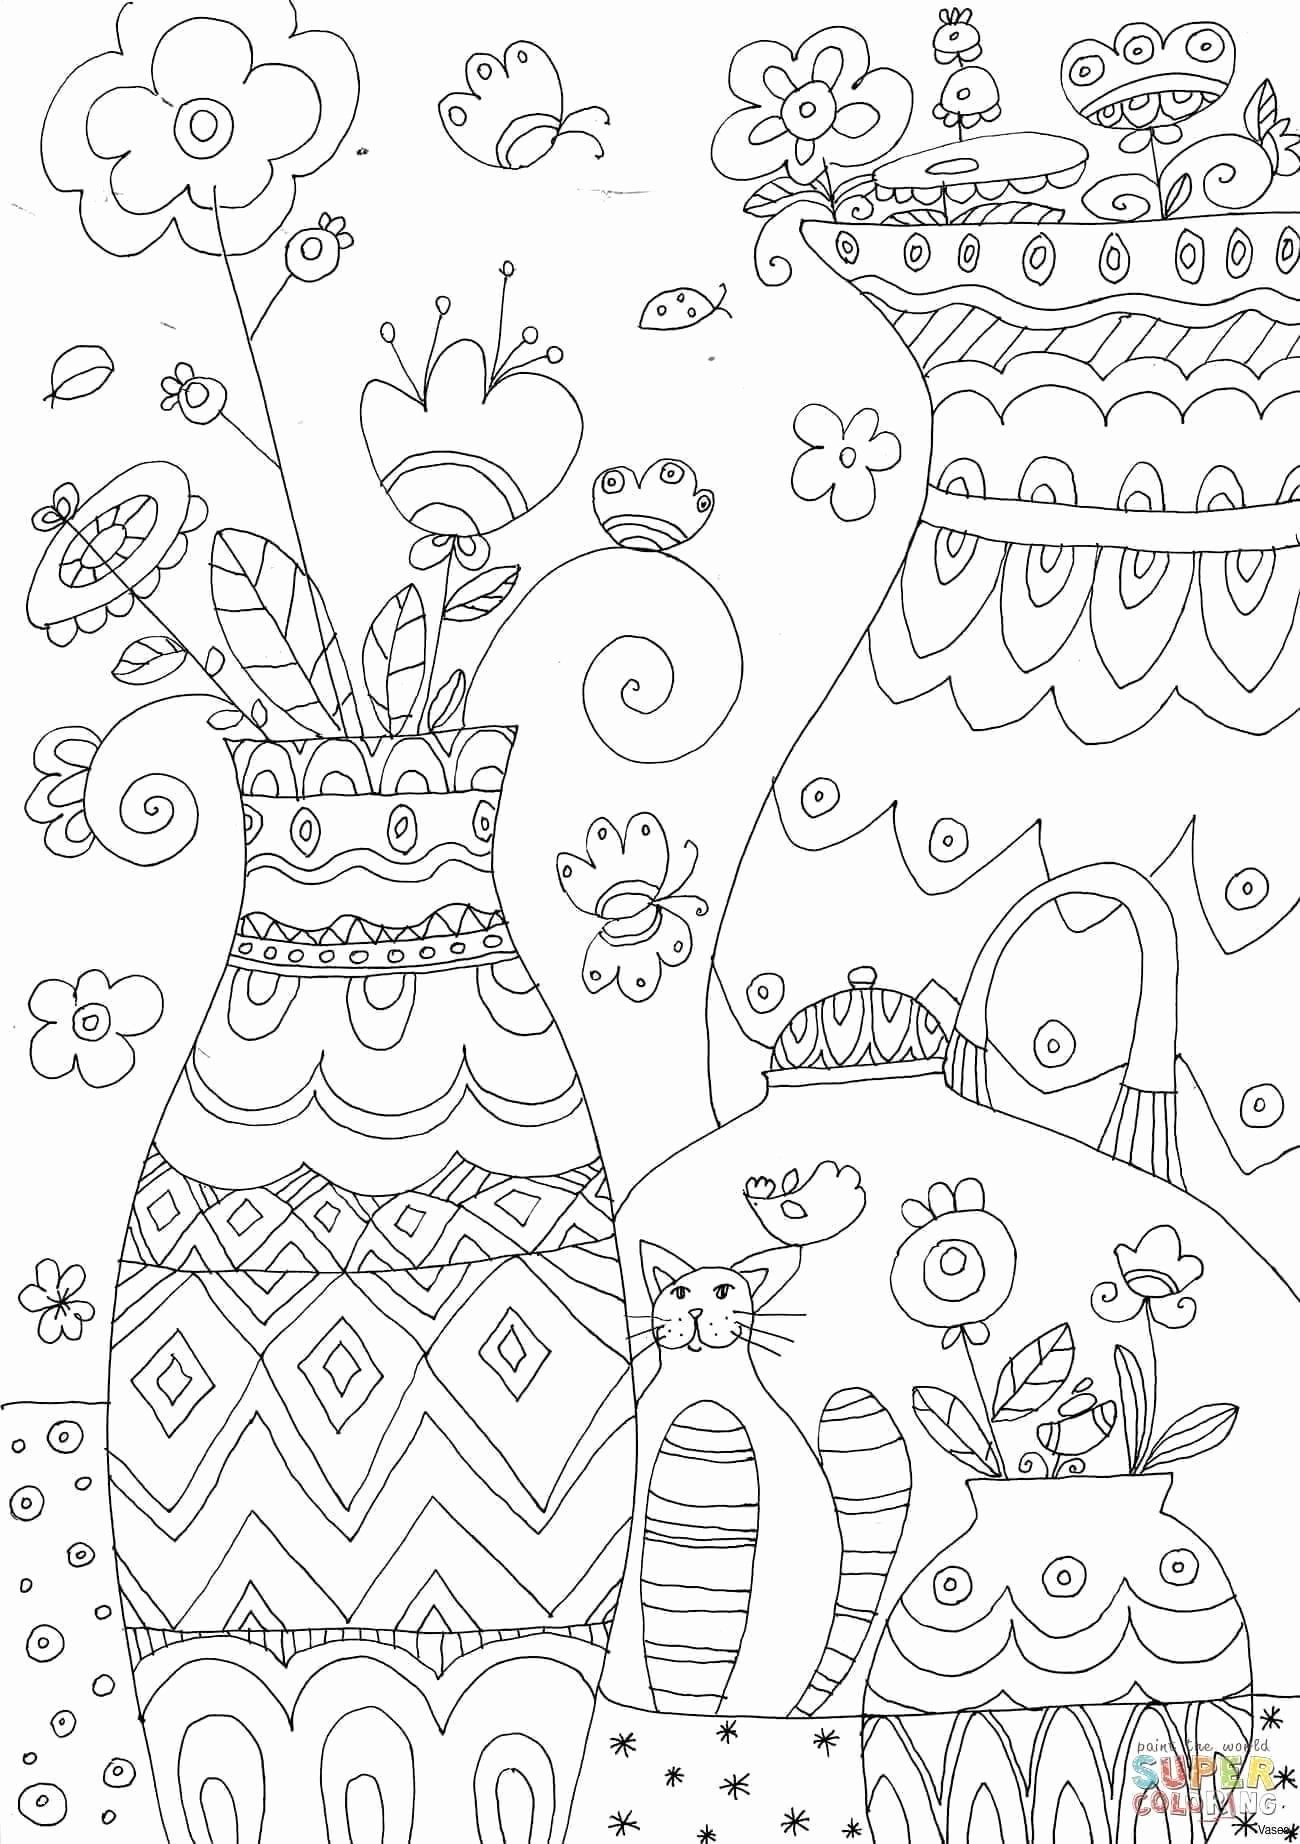 Best Step By Step Drawing Book Lovely 44 Inspirational Coloring Books For Kids In Bulk Mothers Day Coloring Pages Princess Coloring Pages Disney Coloring Pages